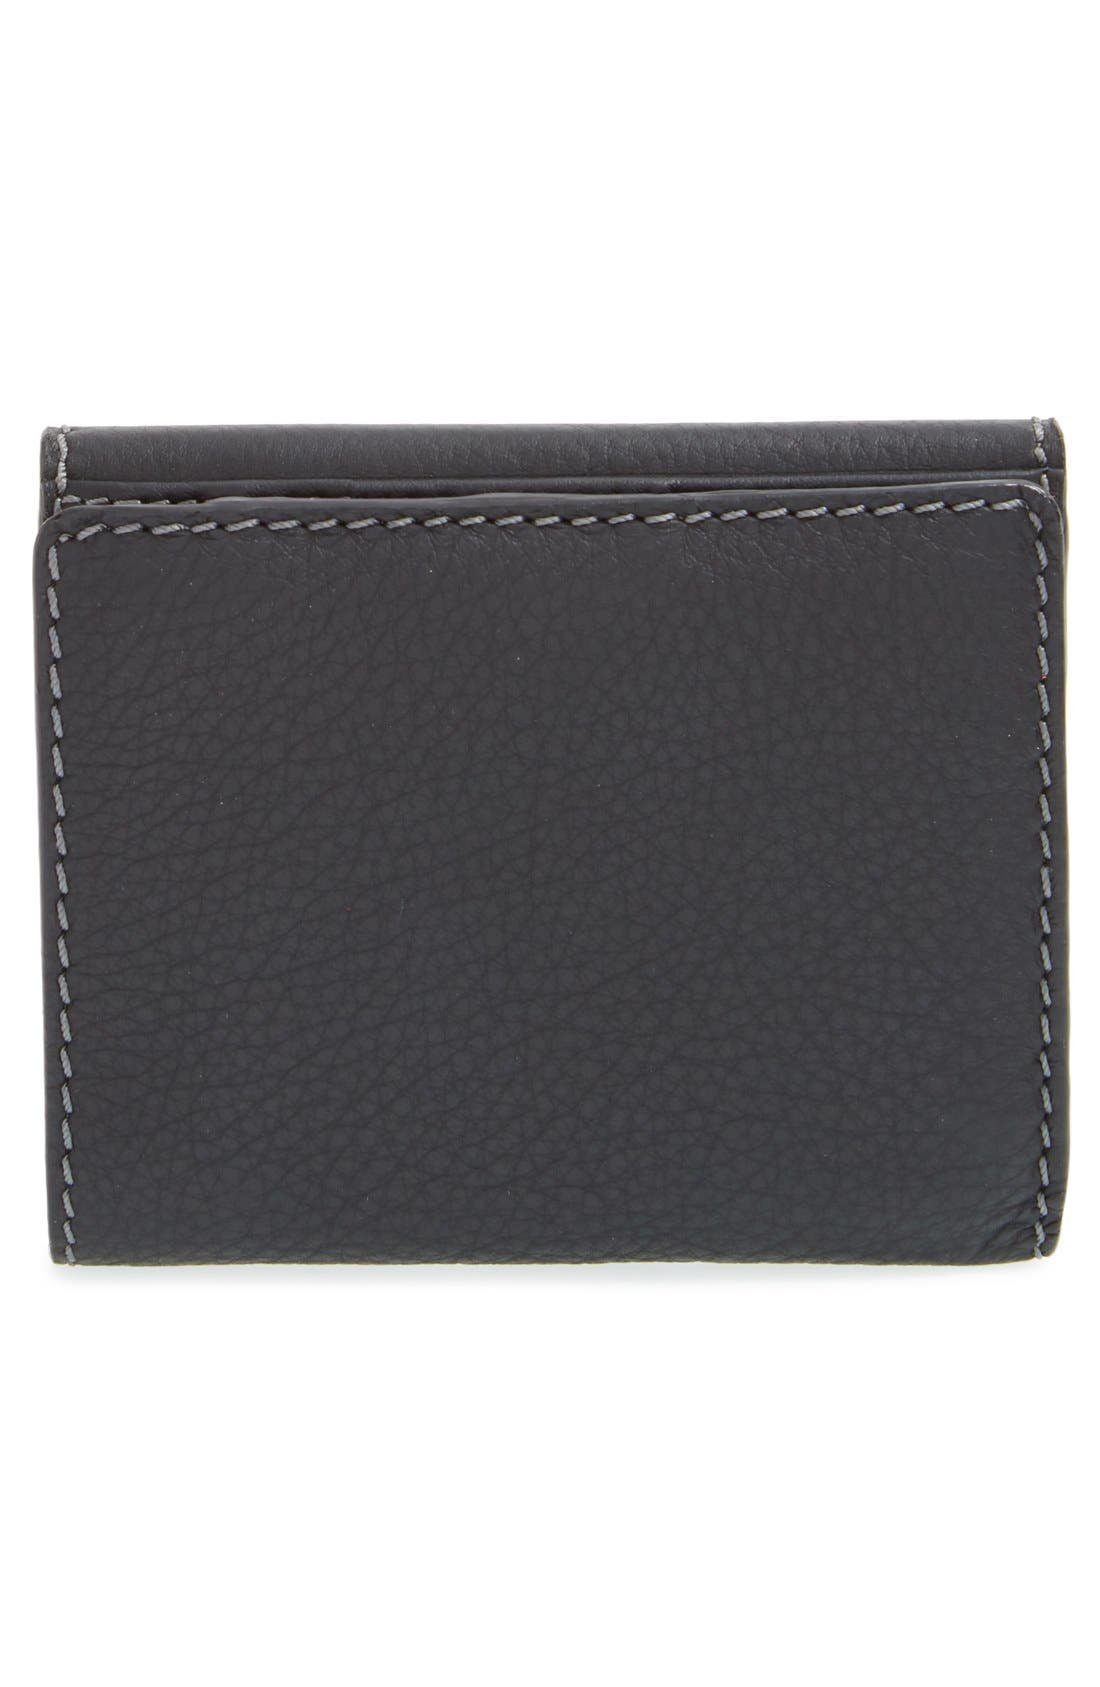 CHLOÉ,                             'Marcie' French Wallet,                             Alternate thumbnail 4, color,                             BLACK